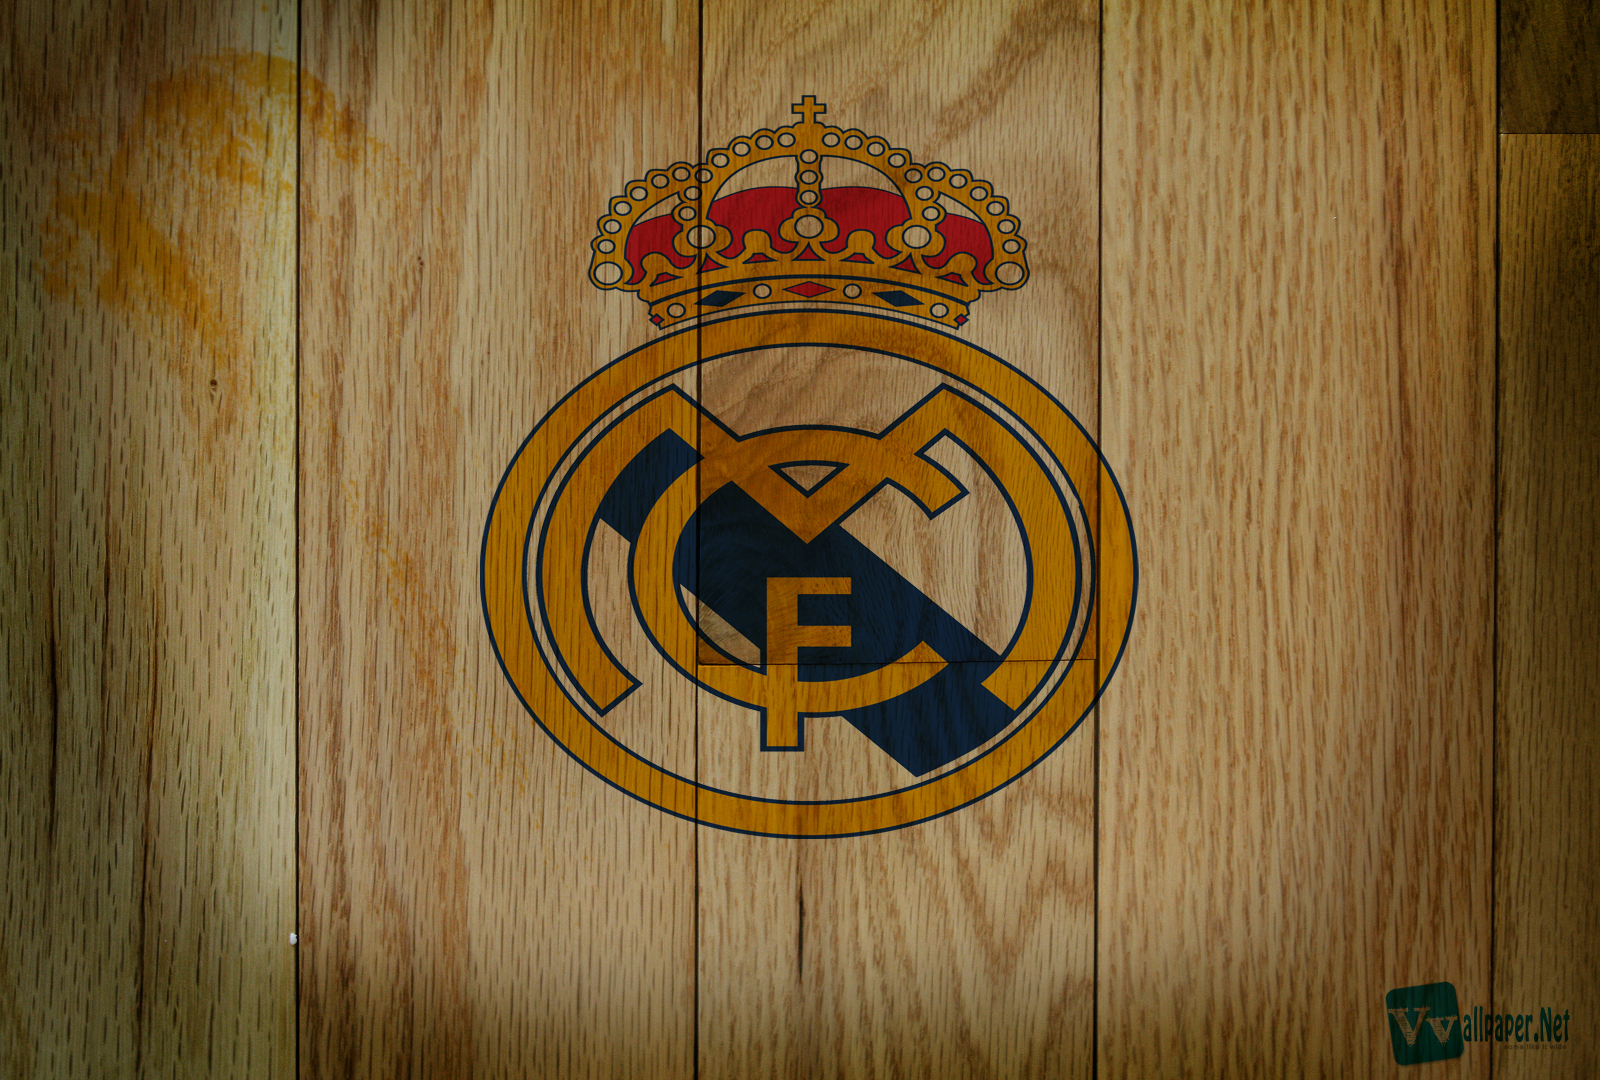 http://2.bp.blogspot.com/--aBYoKKRUhM/TygMcZ61ZoI/AAAAAAAAAd0/IwuPrJv-mZU/s1600/Real_Madrid_CF_Logo_on_Wood_Texture_HD_Wallpaper-Vvallpaper.Net.jpg